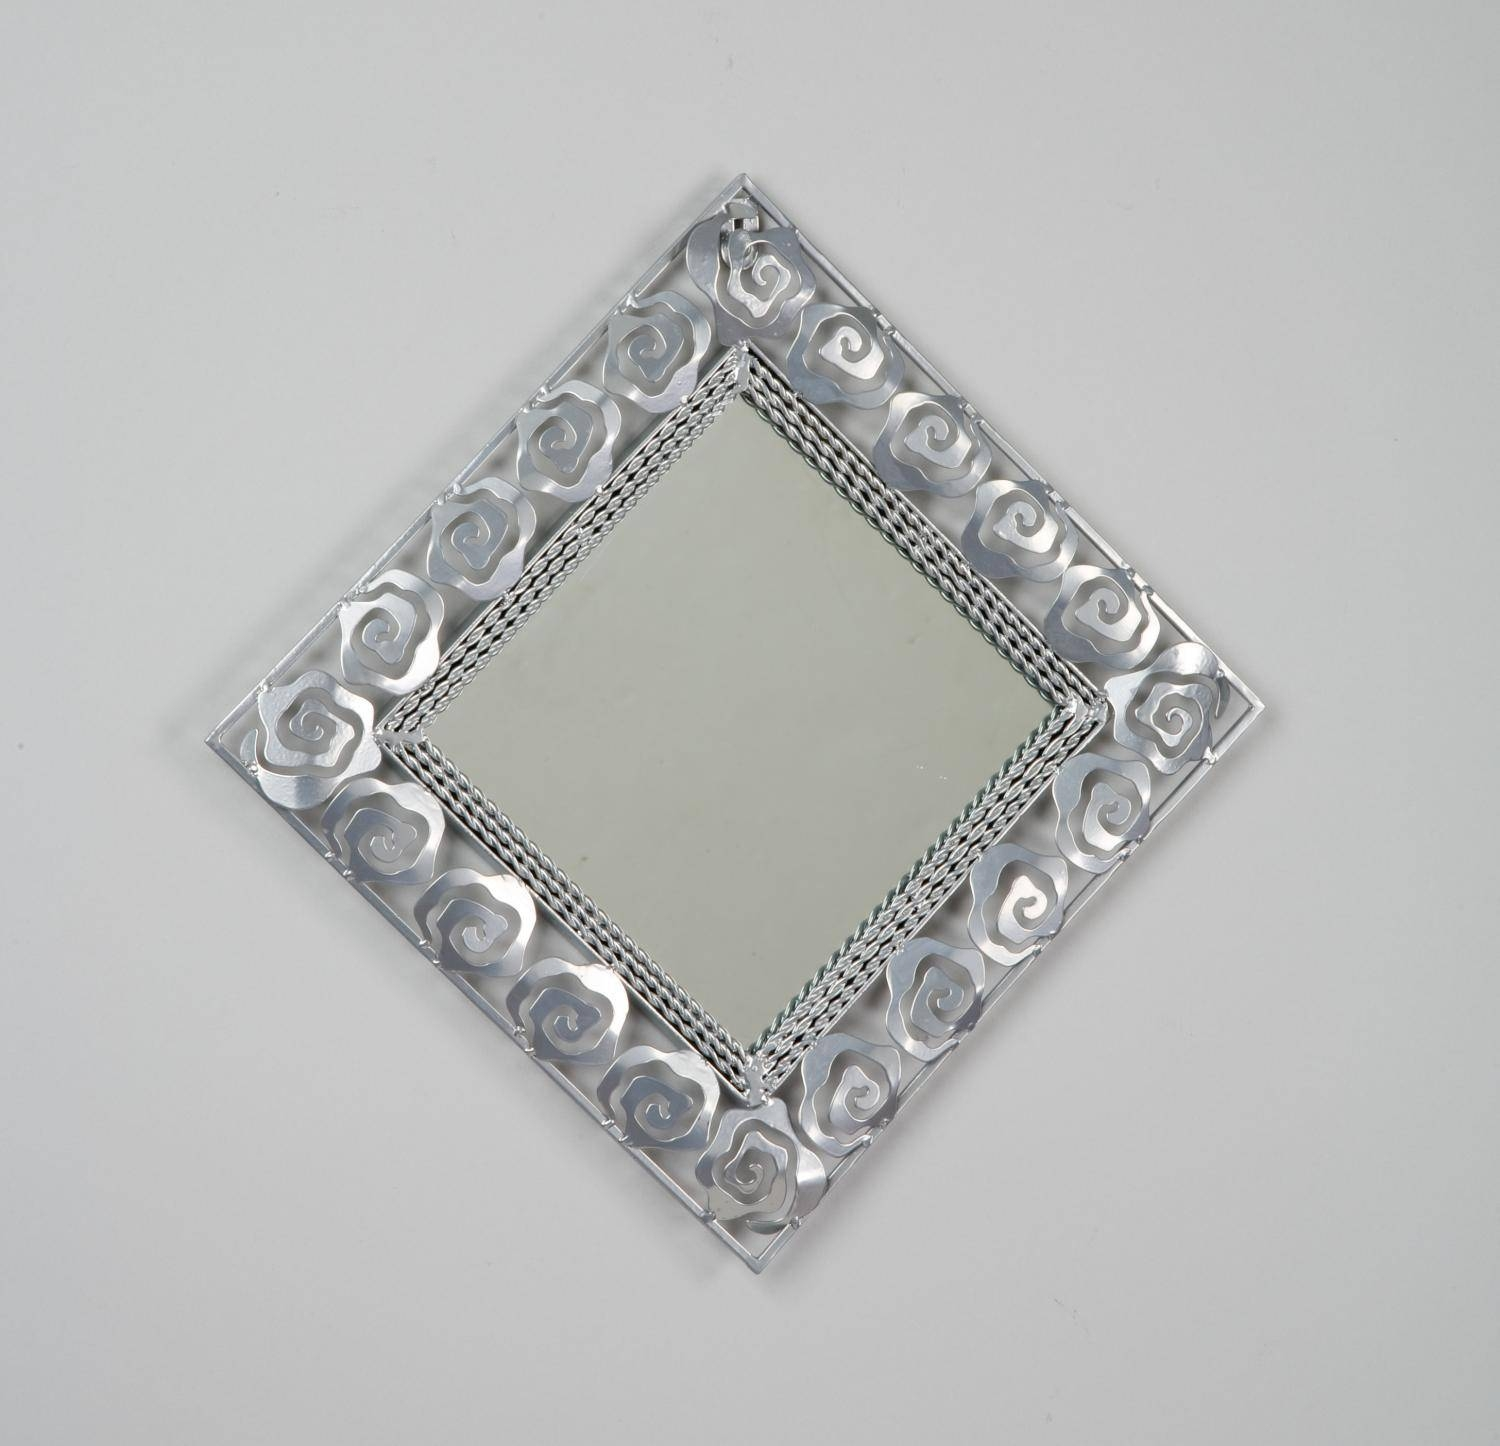 Rose Square Framed Wall Mirror - Tripar International, Inc. within Small Silver Mirrors (Image 20 of 25)